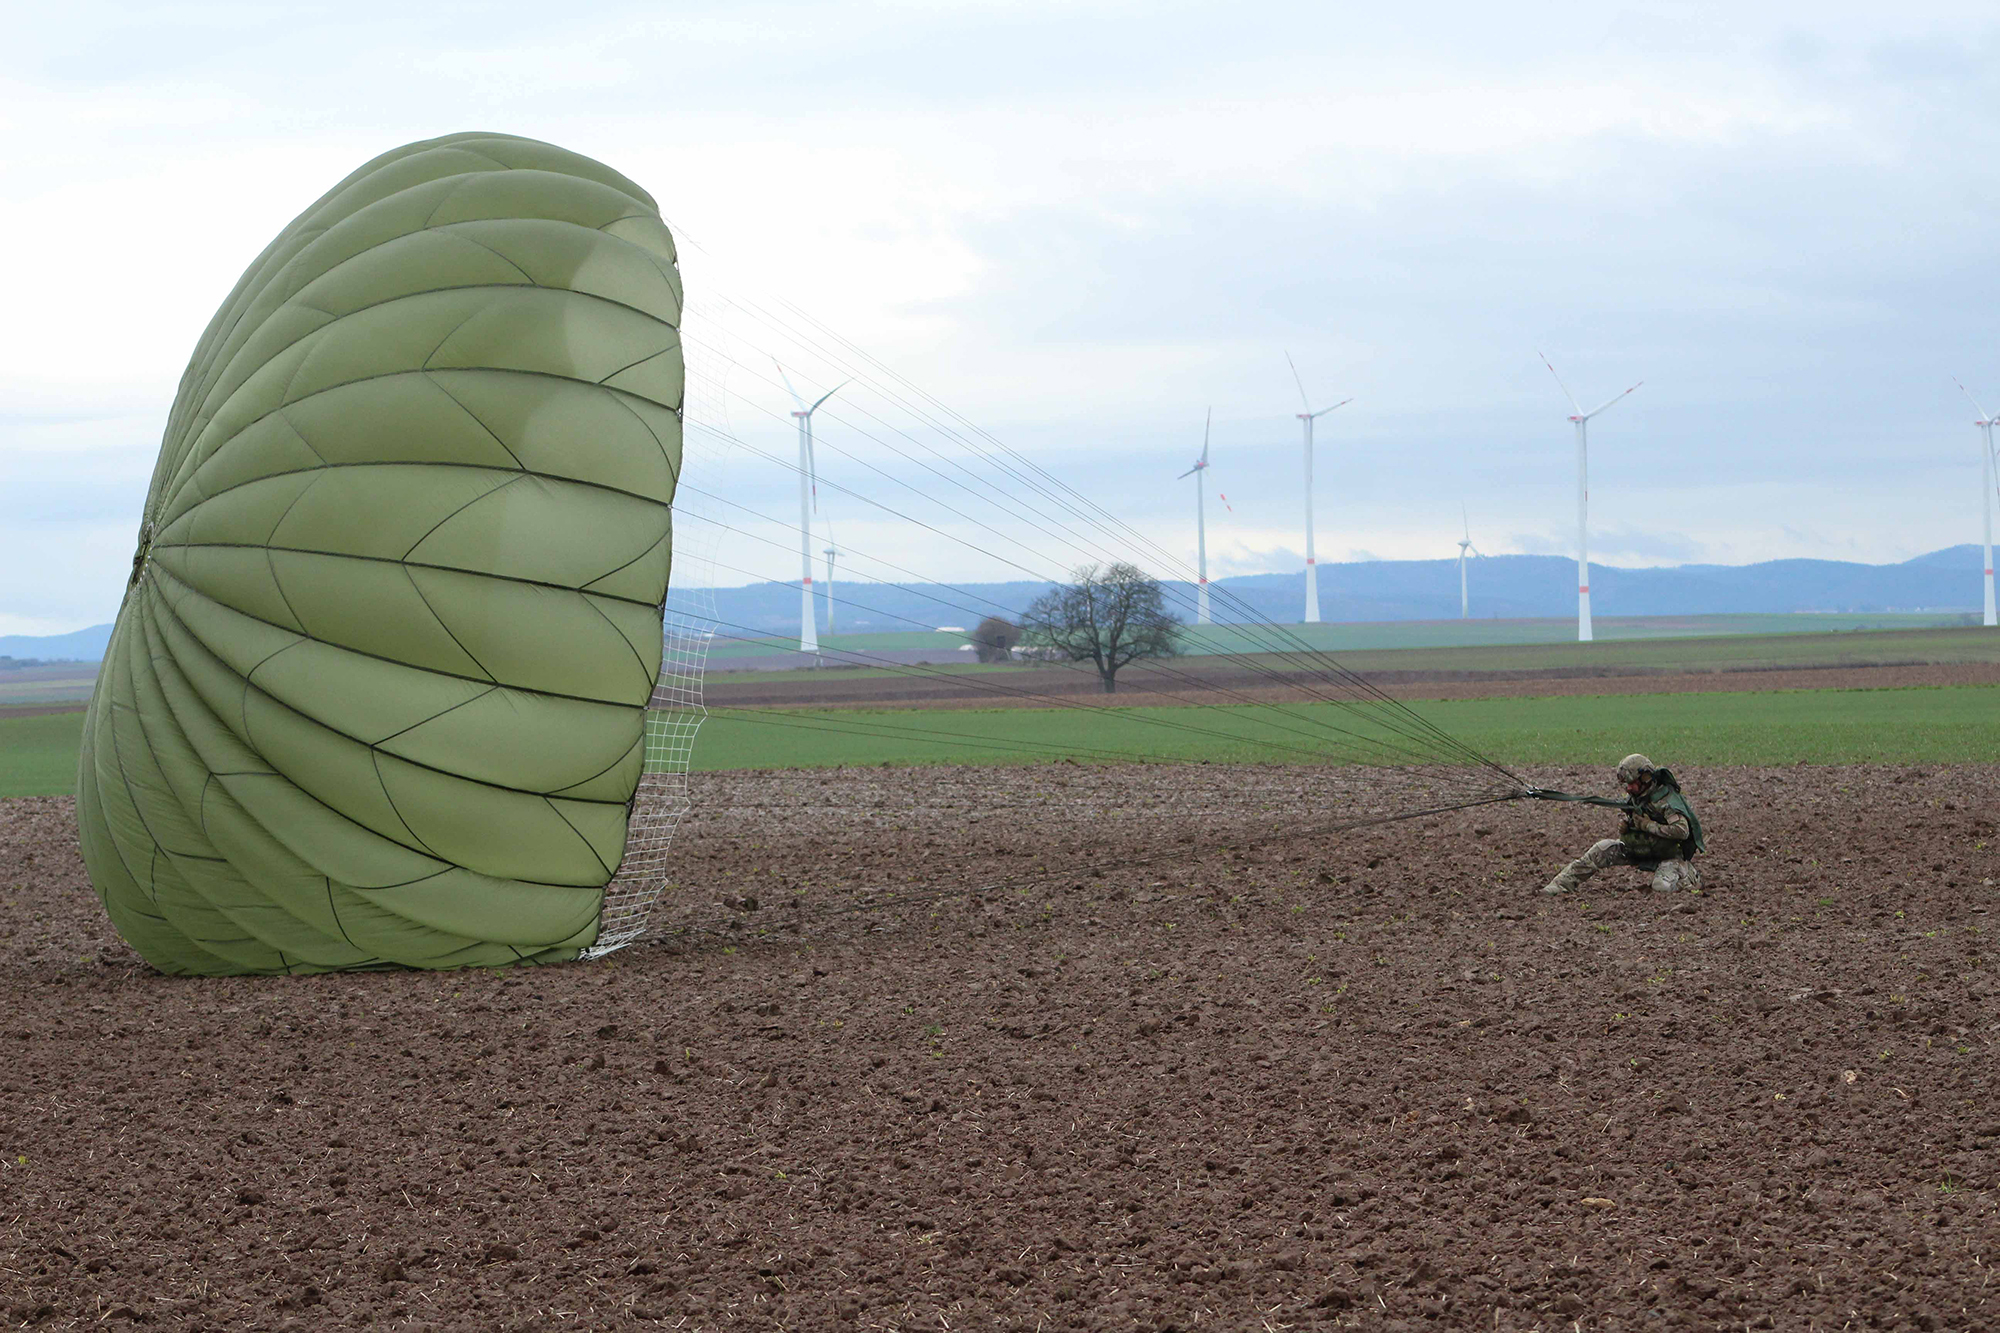 A U.S. Army paratrooper lands at Alzey drop zone Dec. 18, 2019, after jumping off a C-160 during Operation Toy Drop 2019, at Alzey, Germany. (Staff Sgt. Sinthia Rosario/Army)